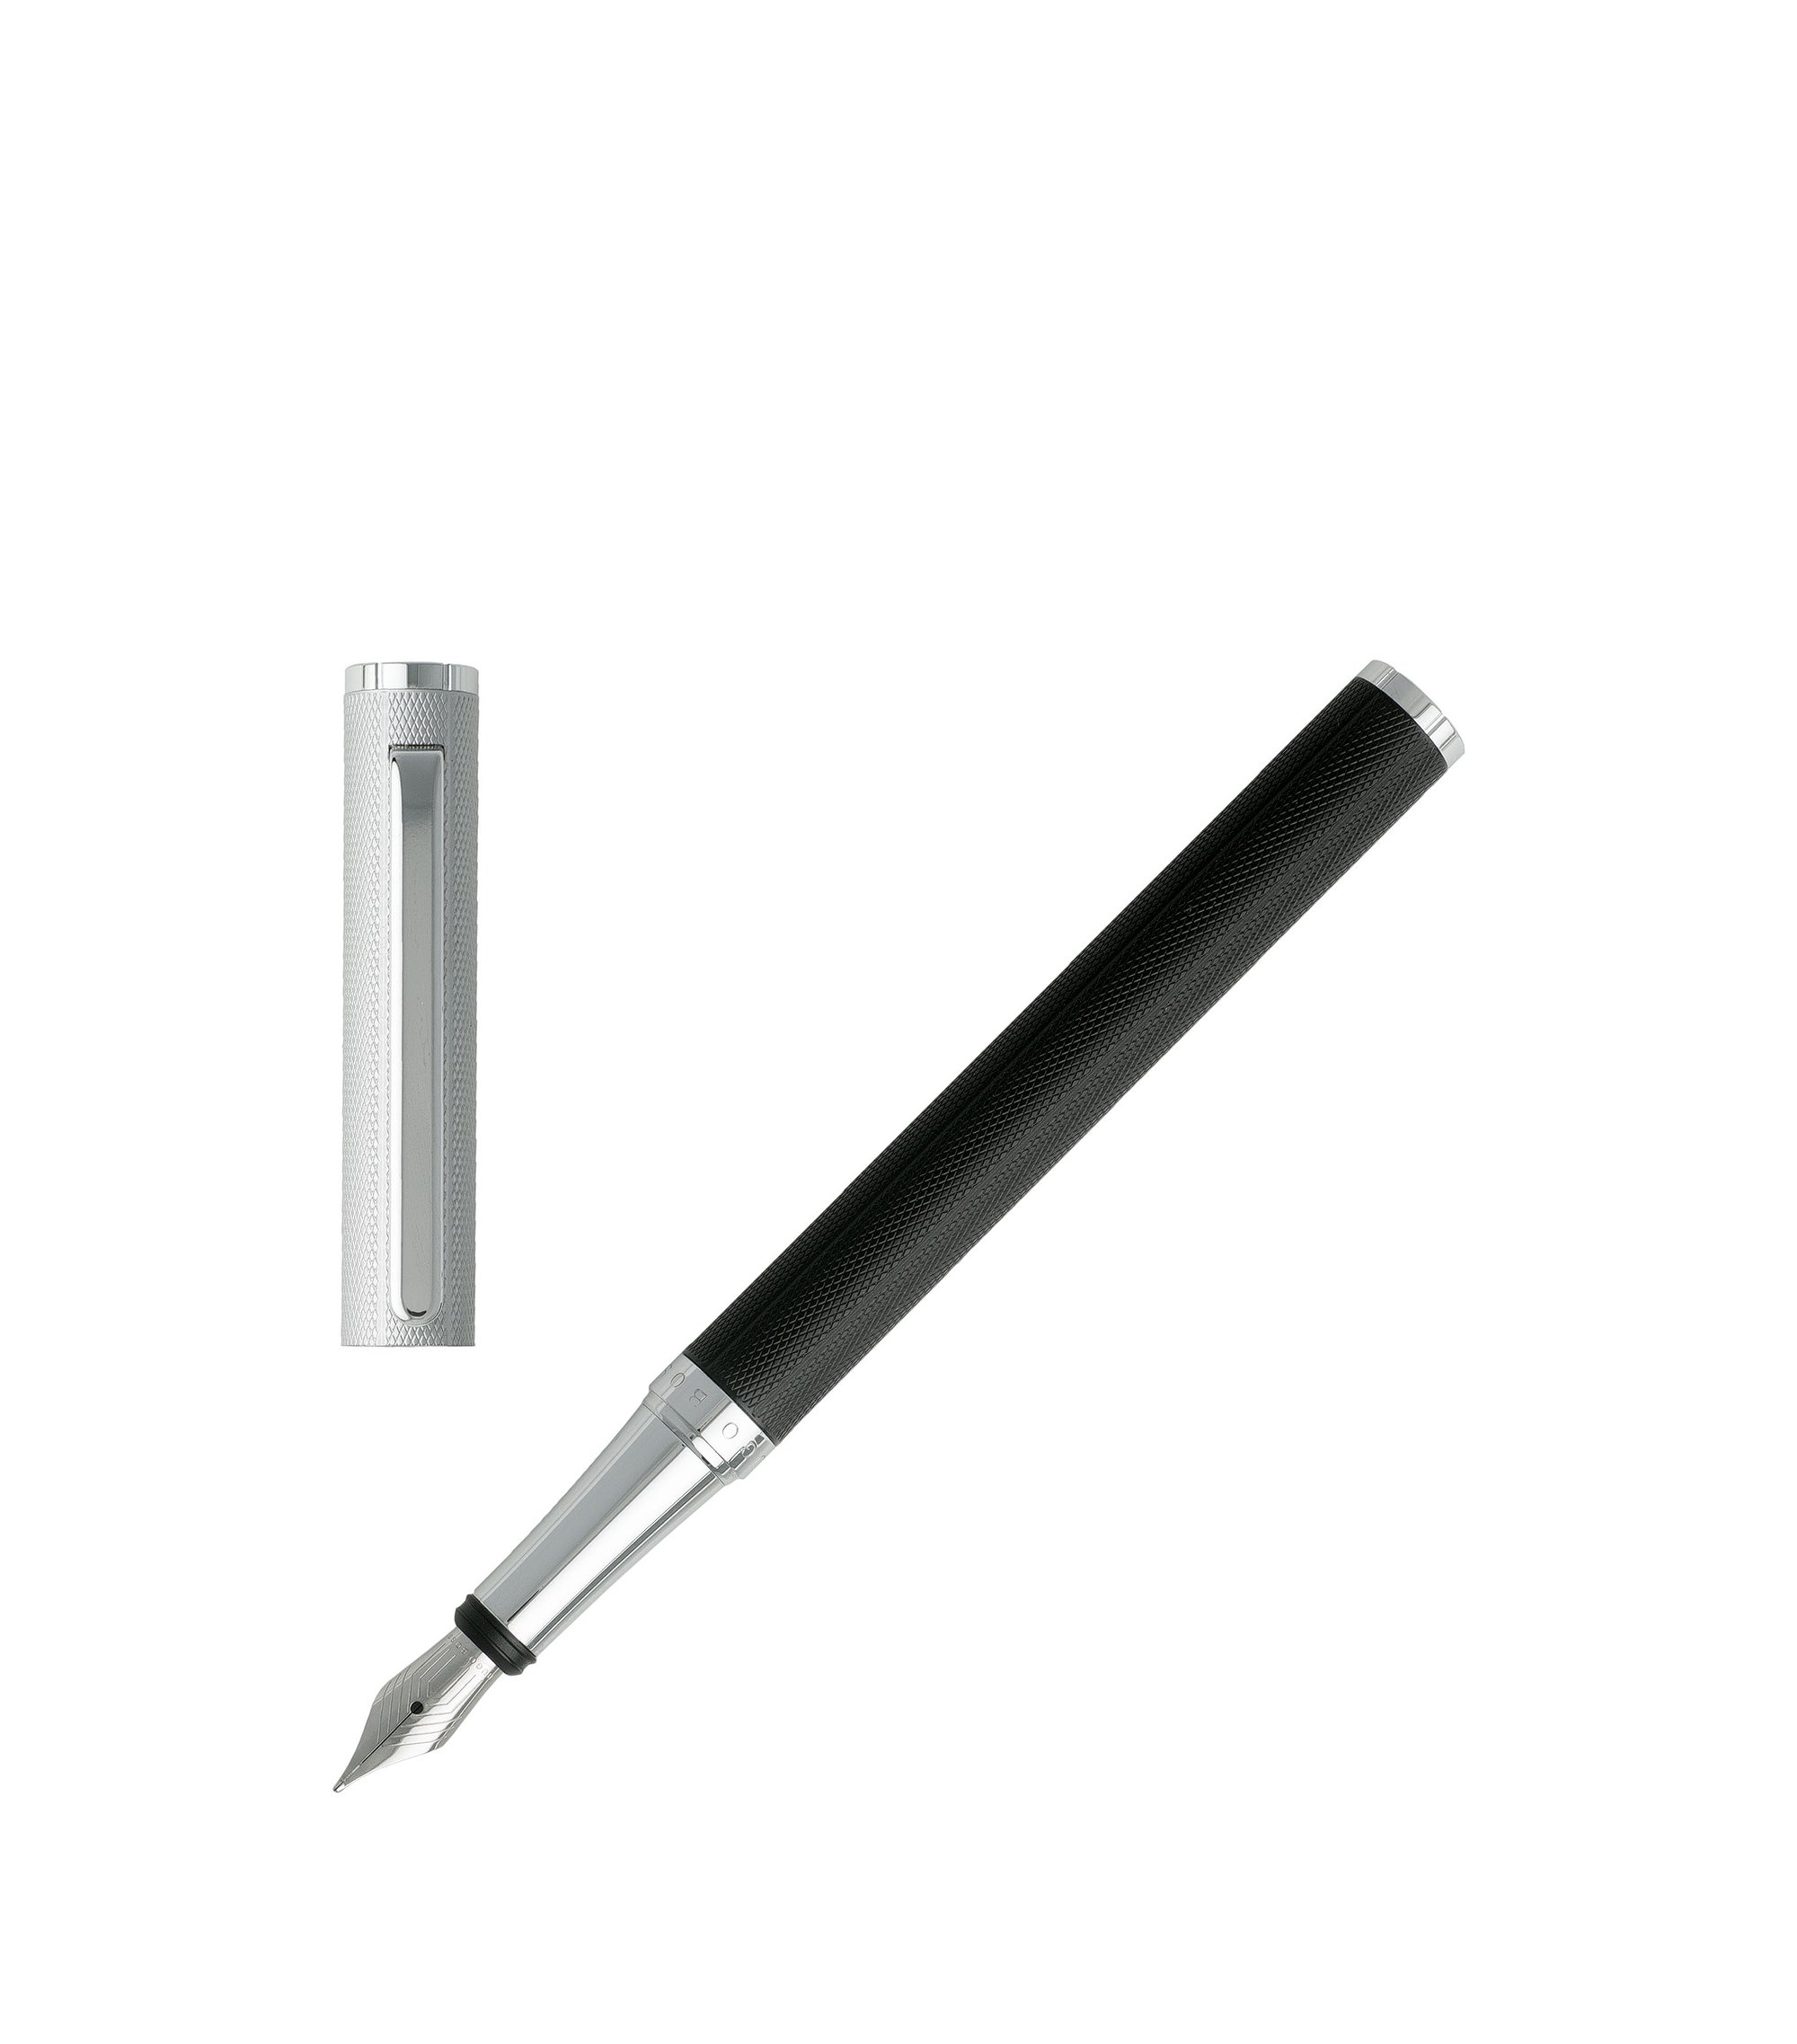 Fountain pen in diamond-textured black lacquer, Black